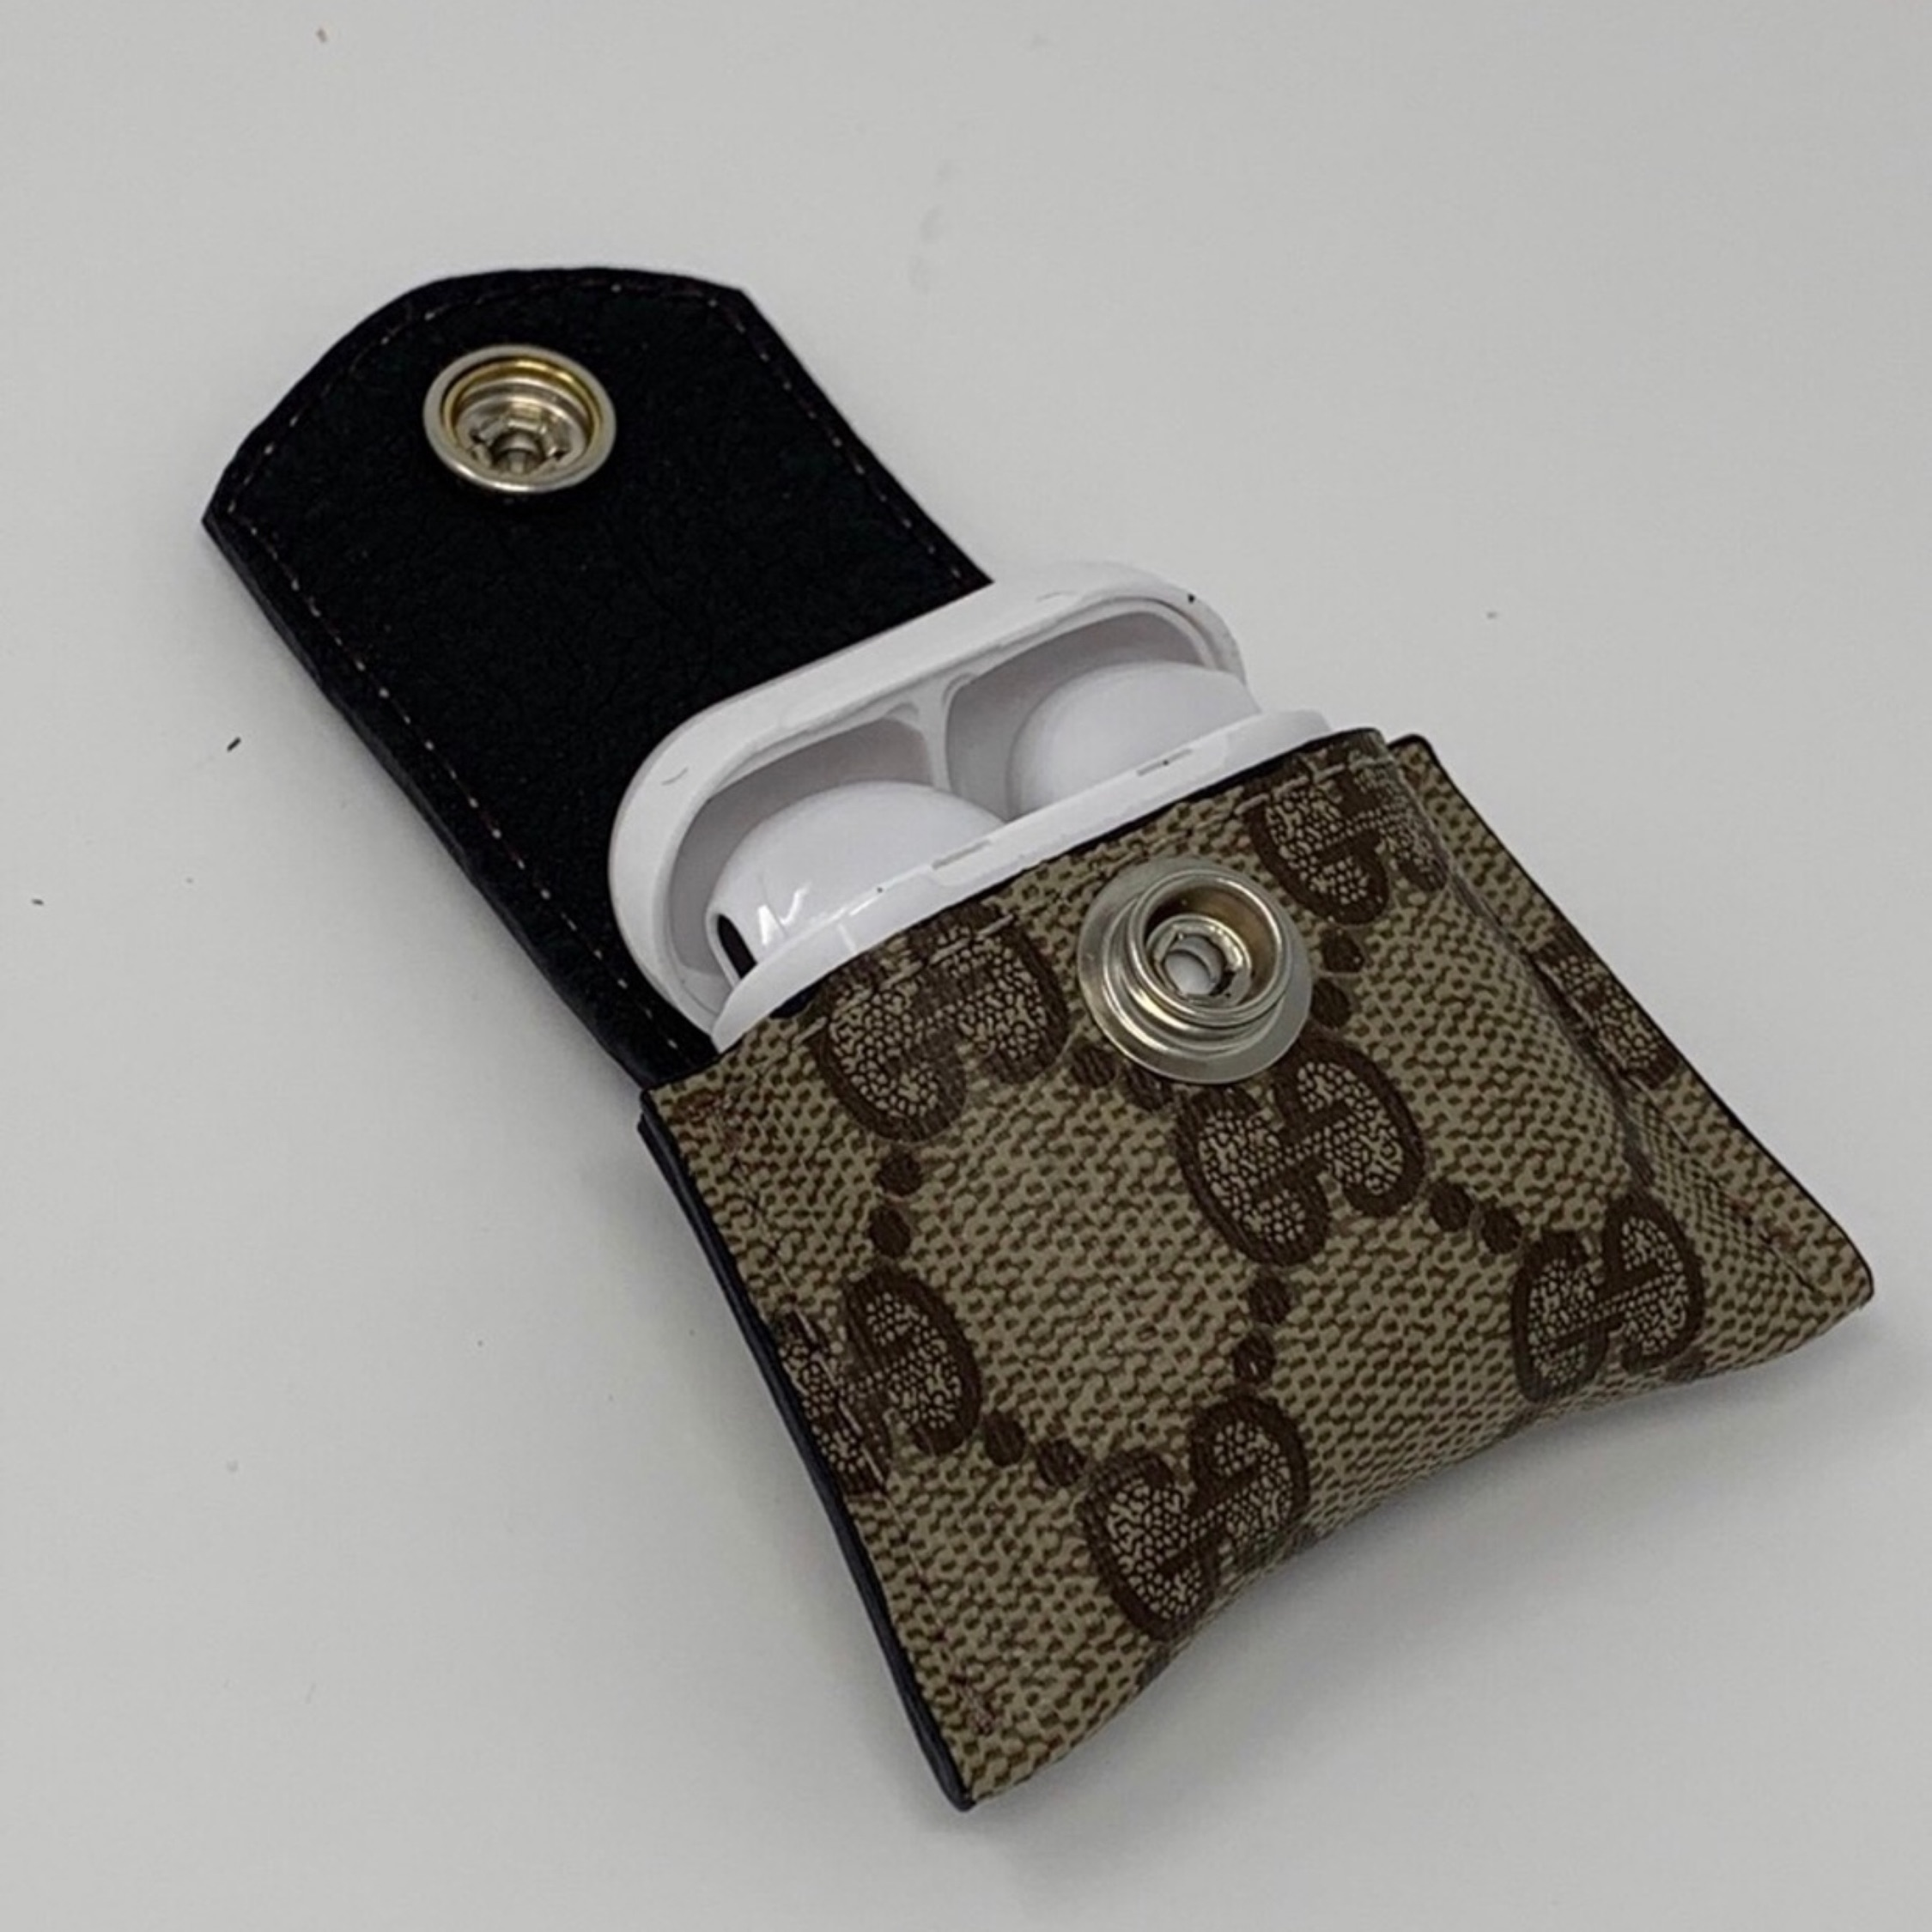 Lv Or Gucci Apple Airpod Case 1